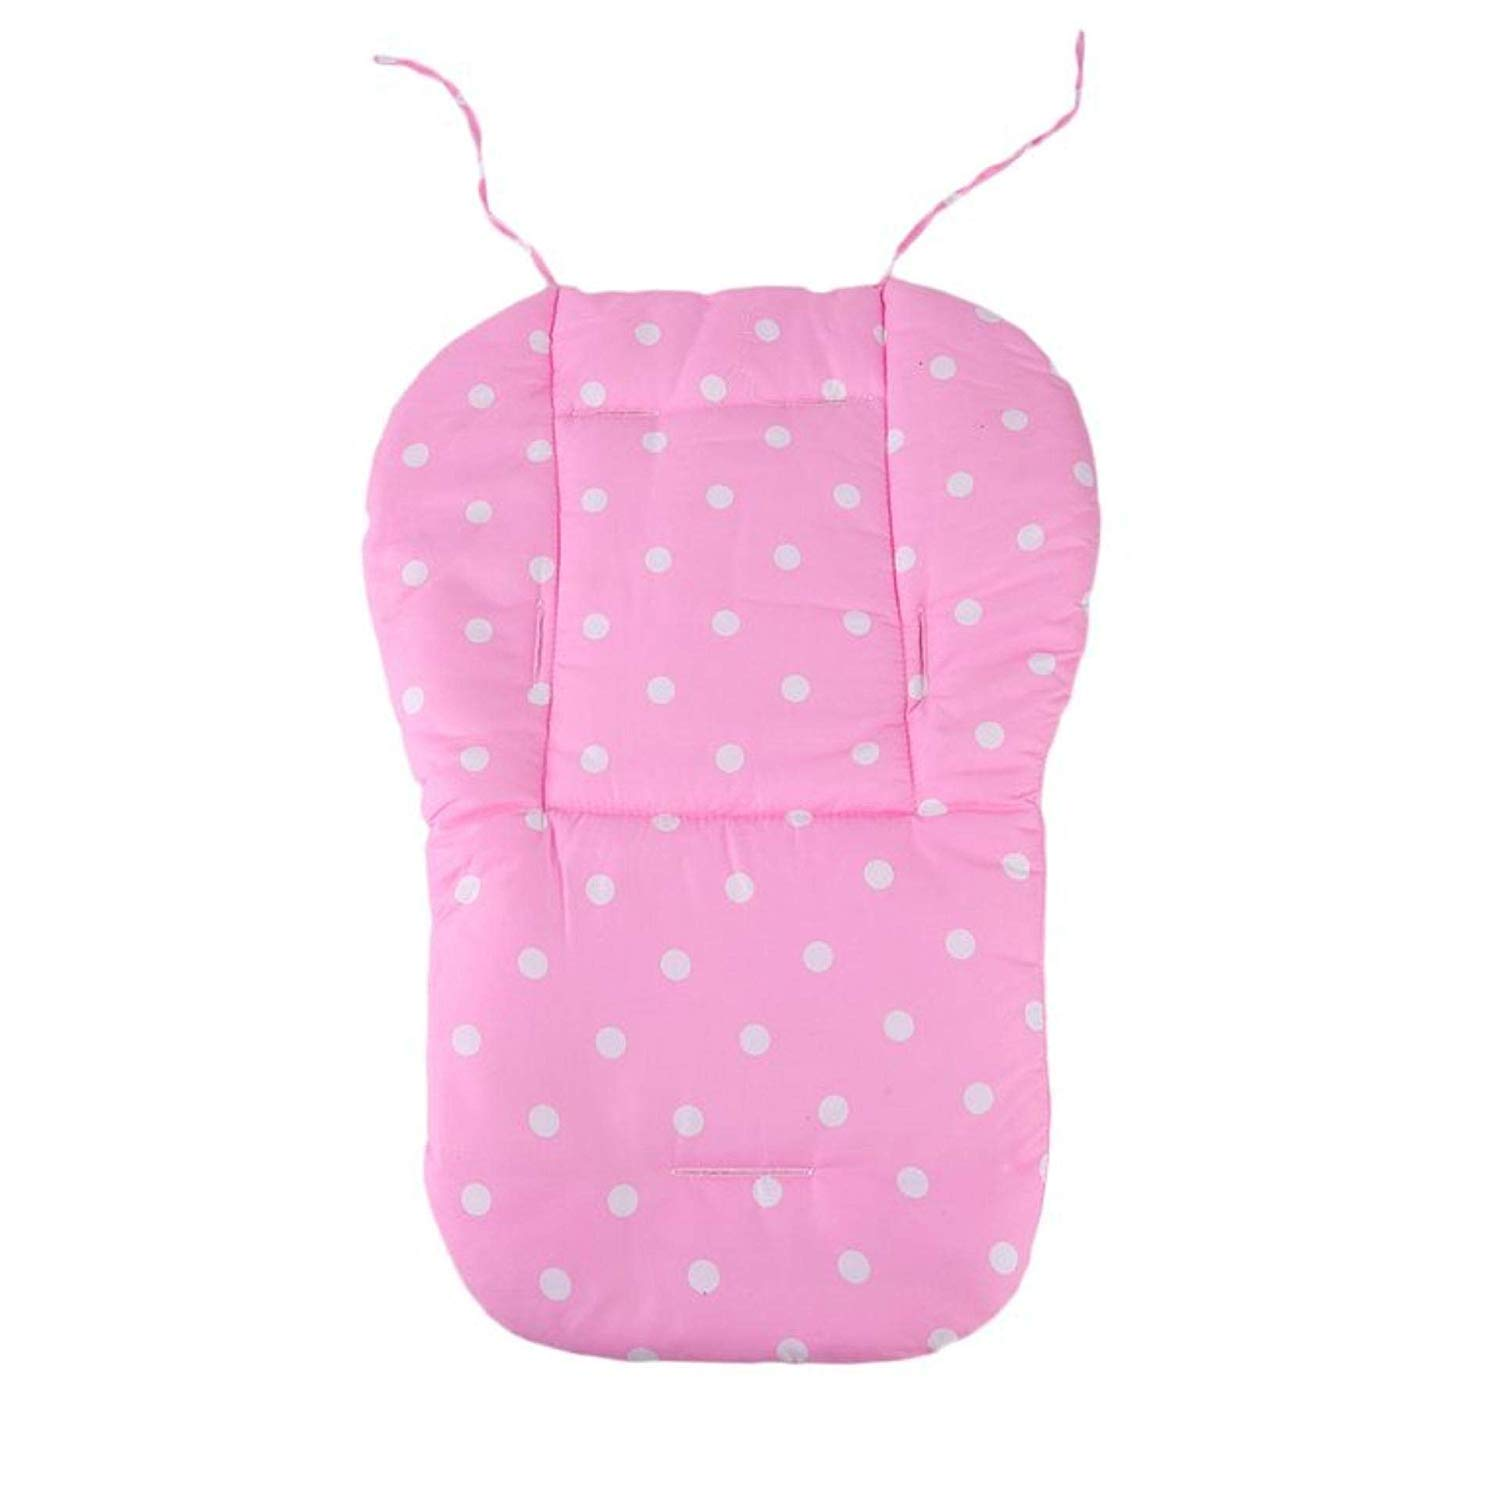 Replacement Parts/Accessories to fit 4moms Strollers and Car Seats Products for Babies, Toddlers, and Children (Pink Polka Dot Cushion)